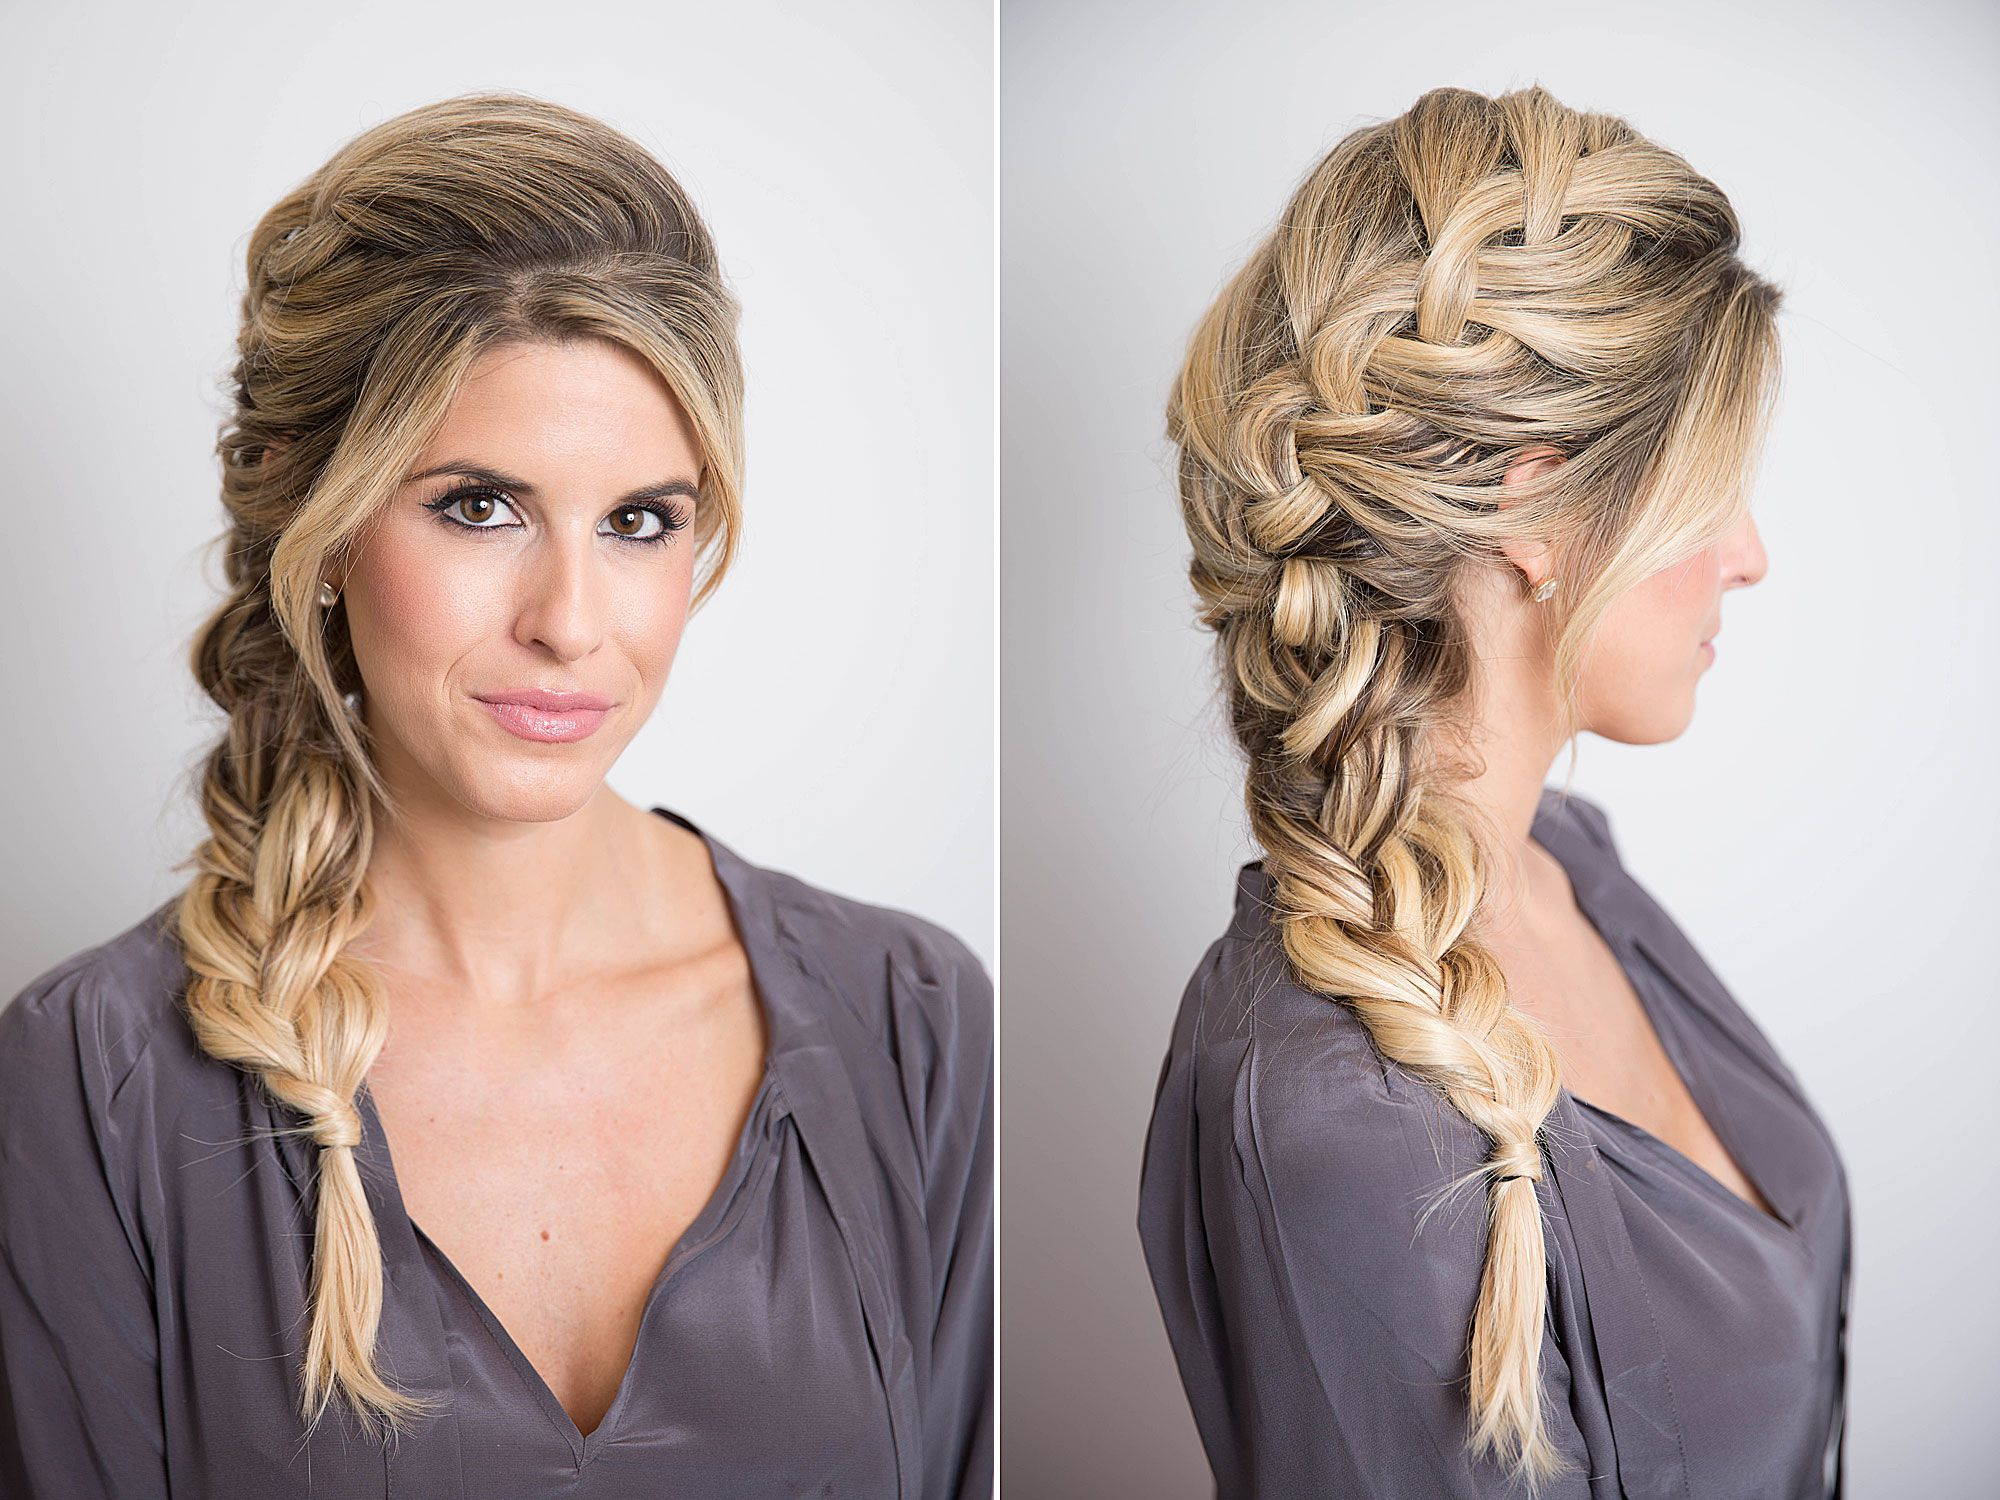 17 Braided Hairstyles With Gifs – How To Do Every Type Of Braid Pertaining To Most Recent Double Braided Look Wedding Hairstyles For Straightened Hair (View 2 of 20)